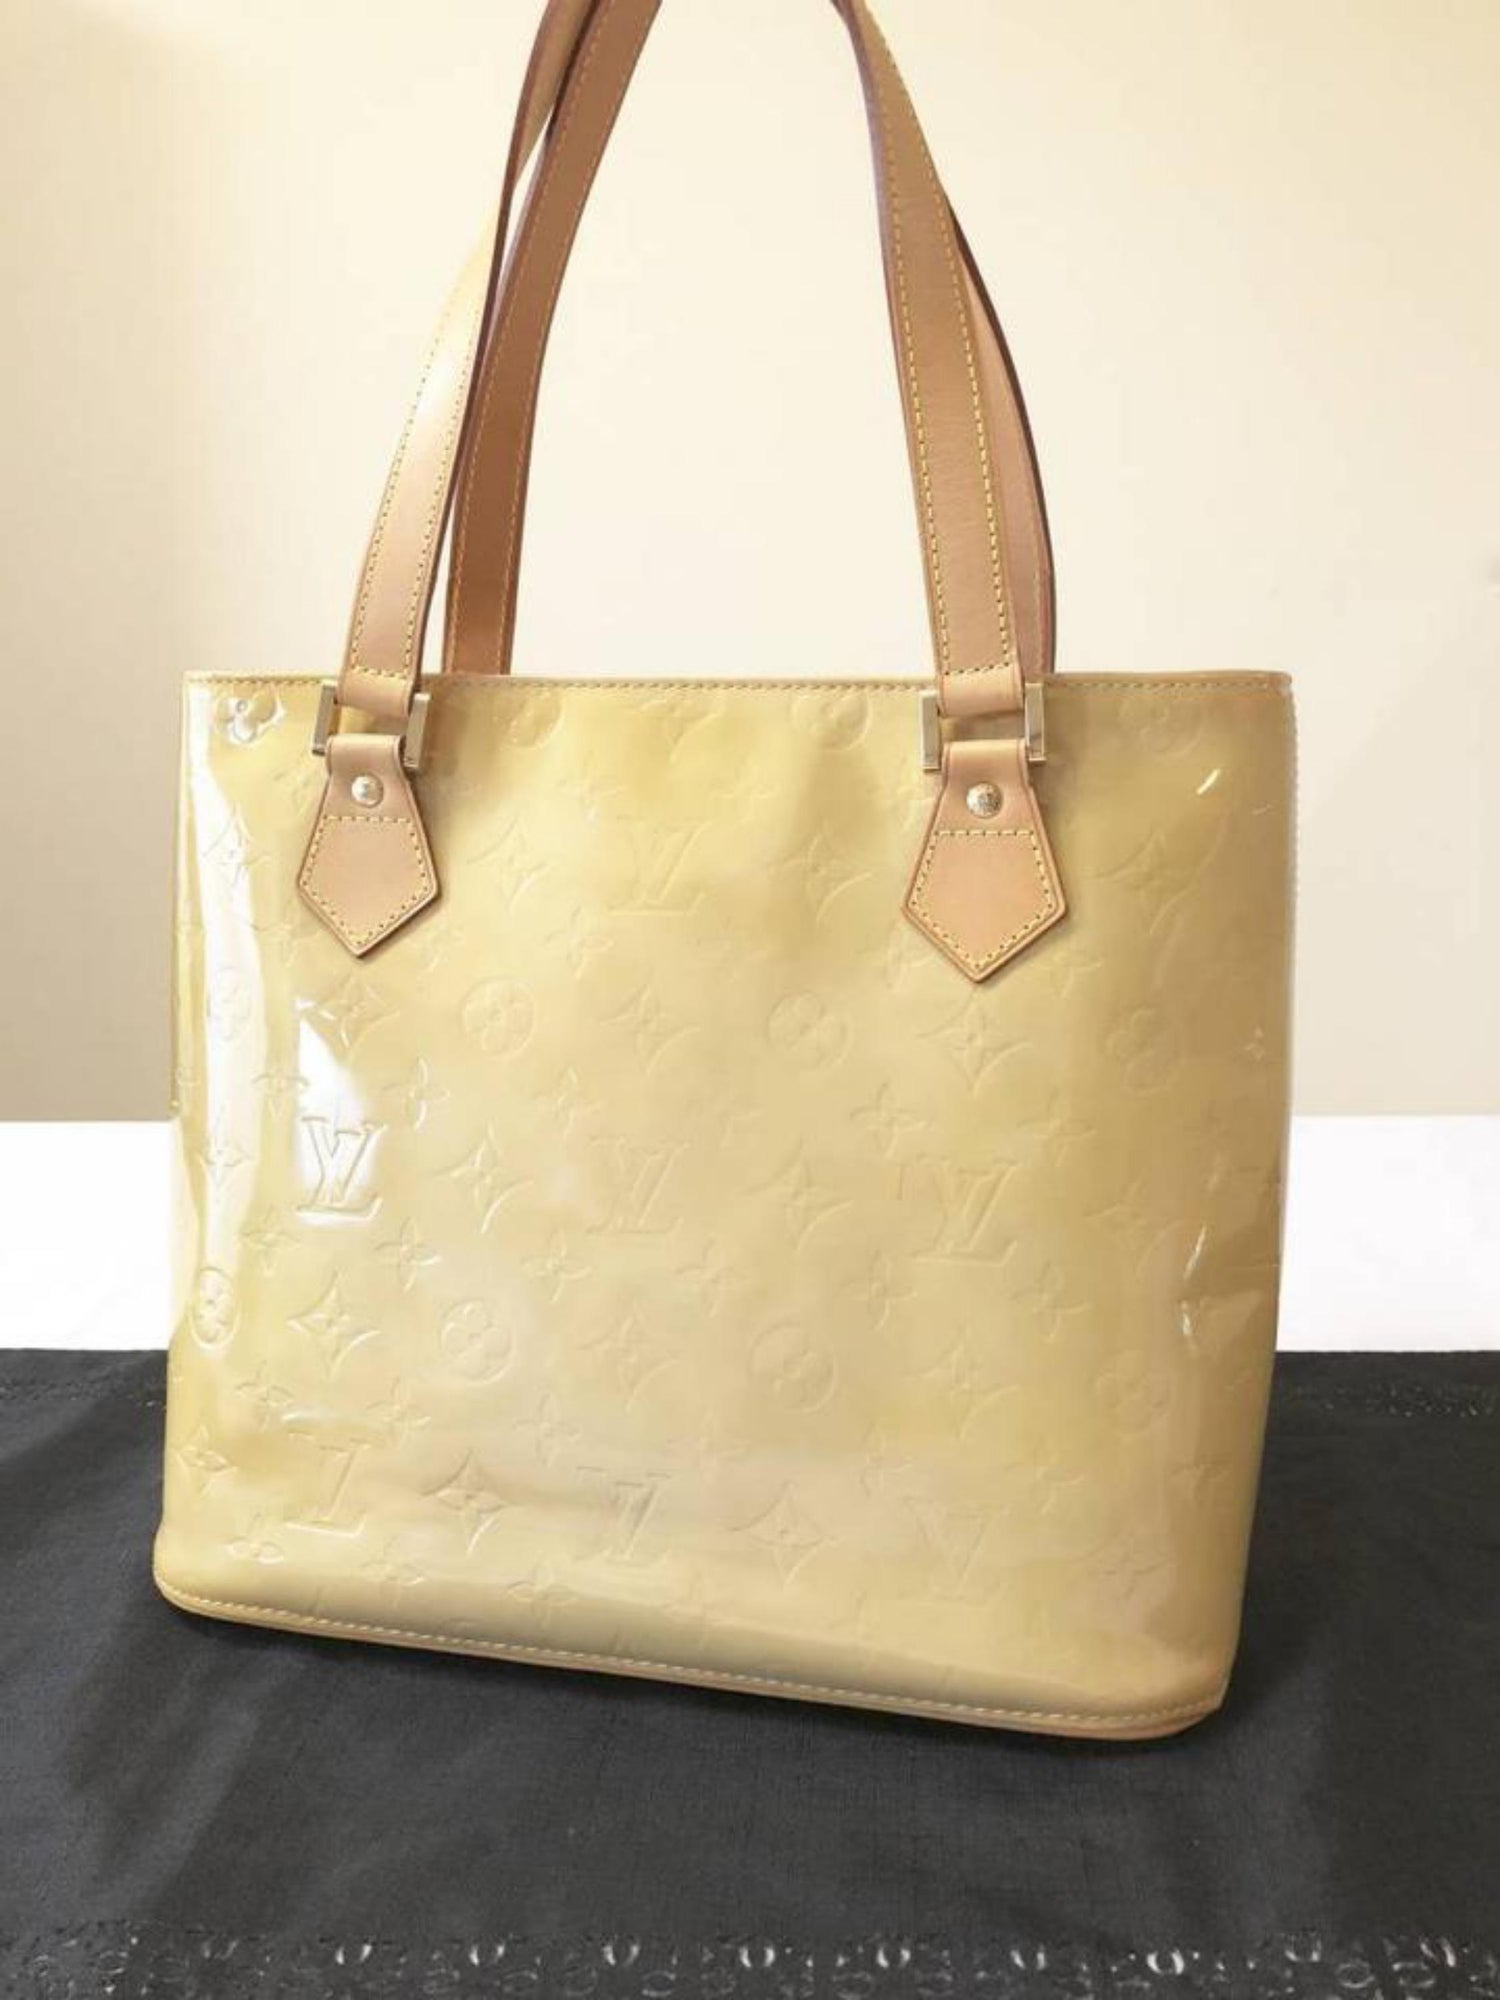 28c3681300fd Louis Vuitton Houston Monogram Vernis Zip 229314 Yellow Patent Leather Tote  For Sale at 1stdibs